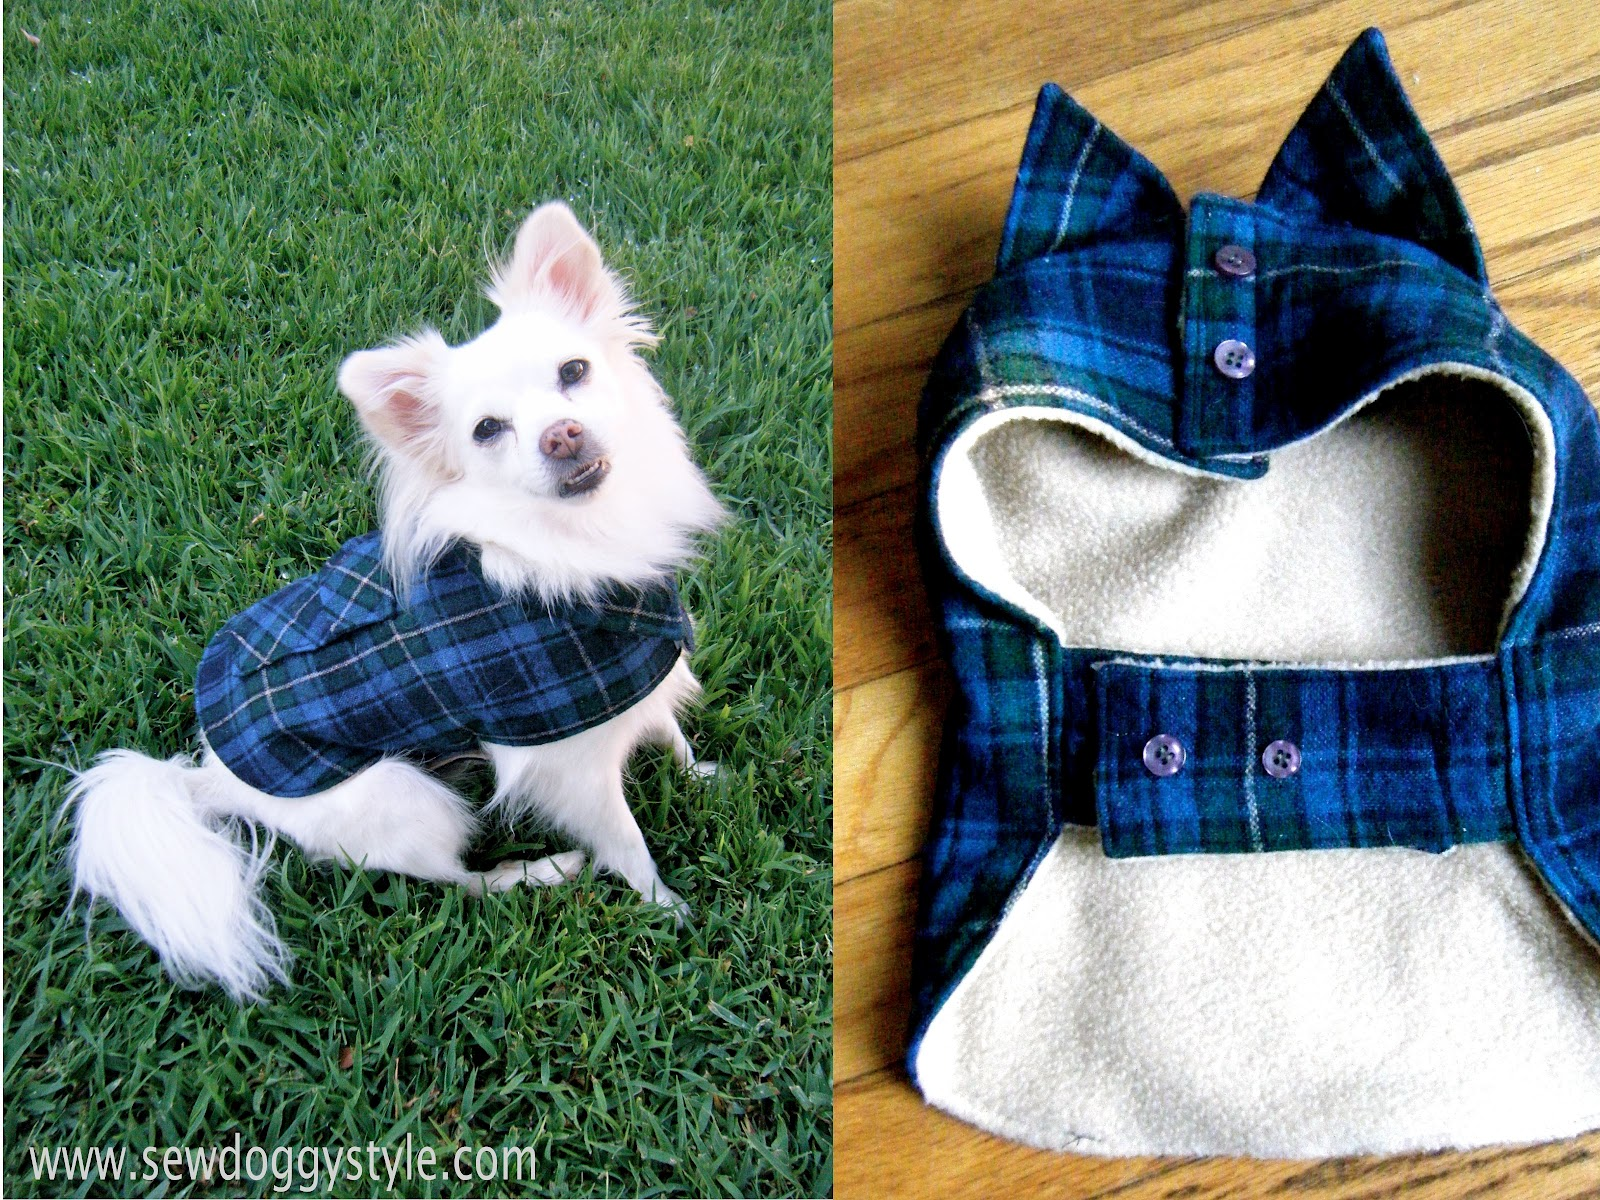 bee575887 Sew DoggyStyle: DIY Pet Coat Pattern - Sewing it Together!